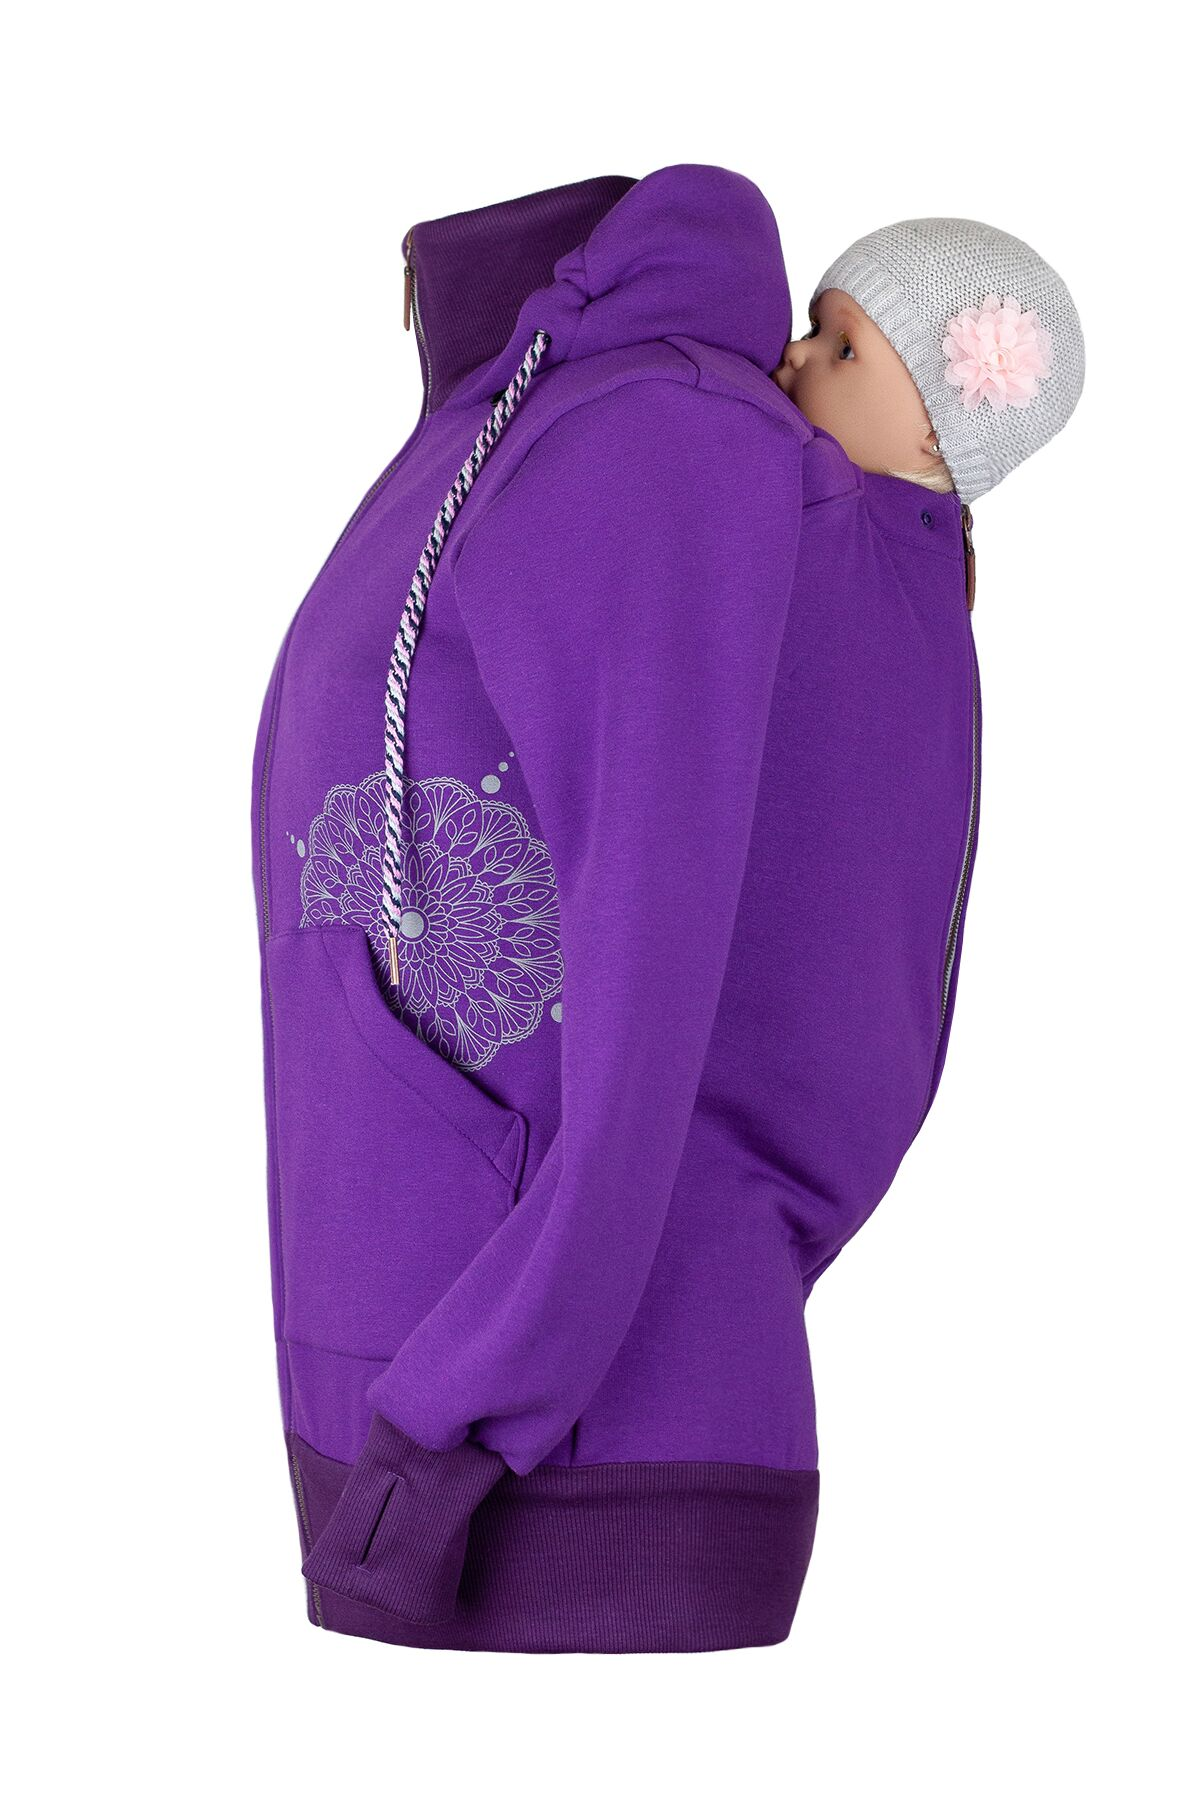 Angelwings TrageHoodie dark purple - 1